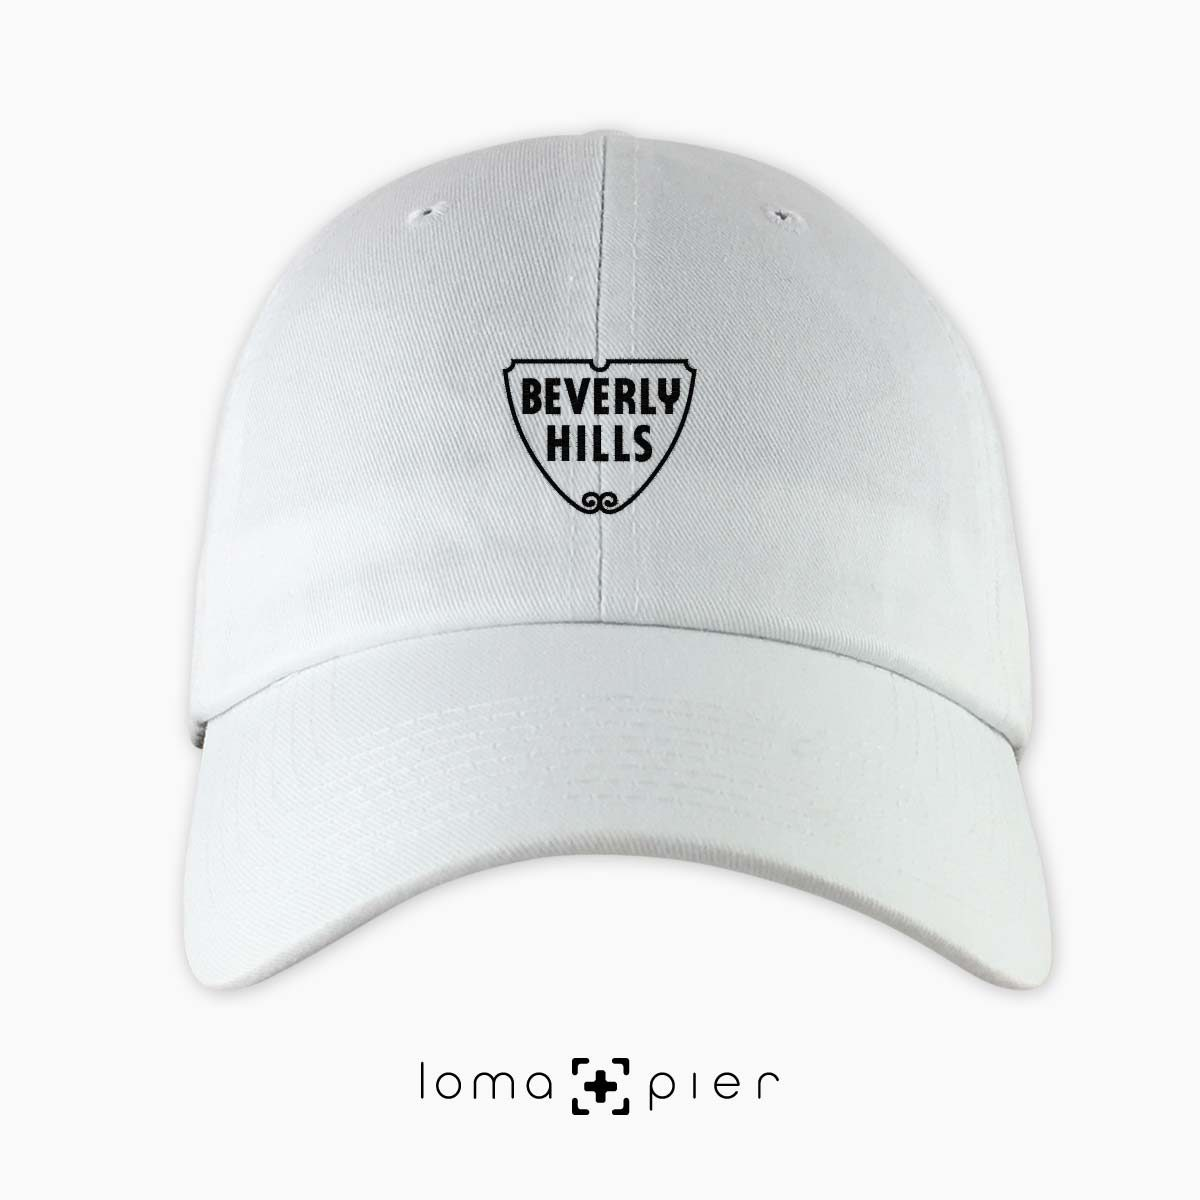 ​BEVERLY HILLS icon embroidered on a ​white unstructured dad hat with ​black thread by loma+pier hat store made in the USA